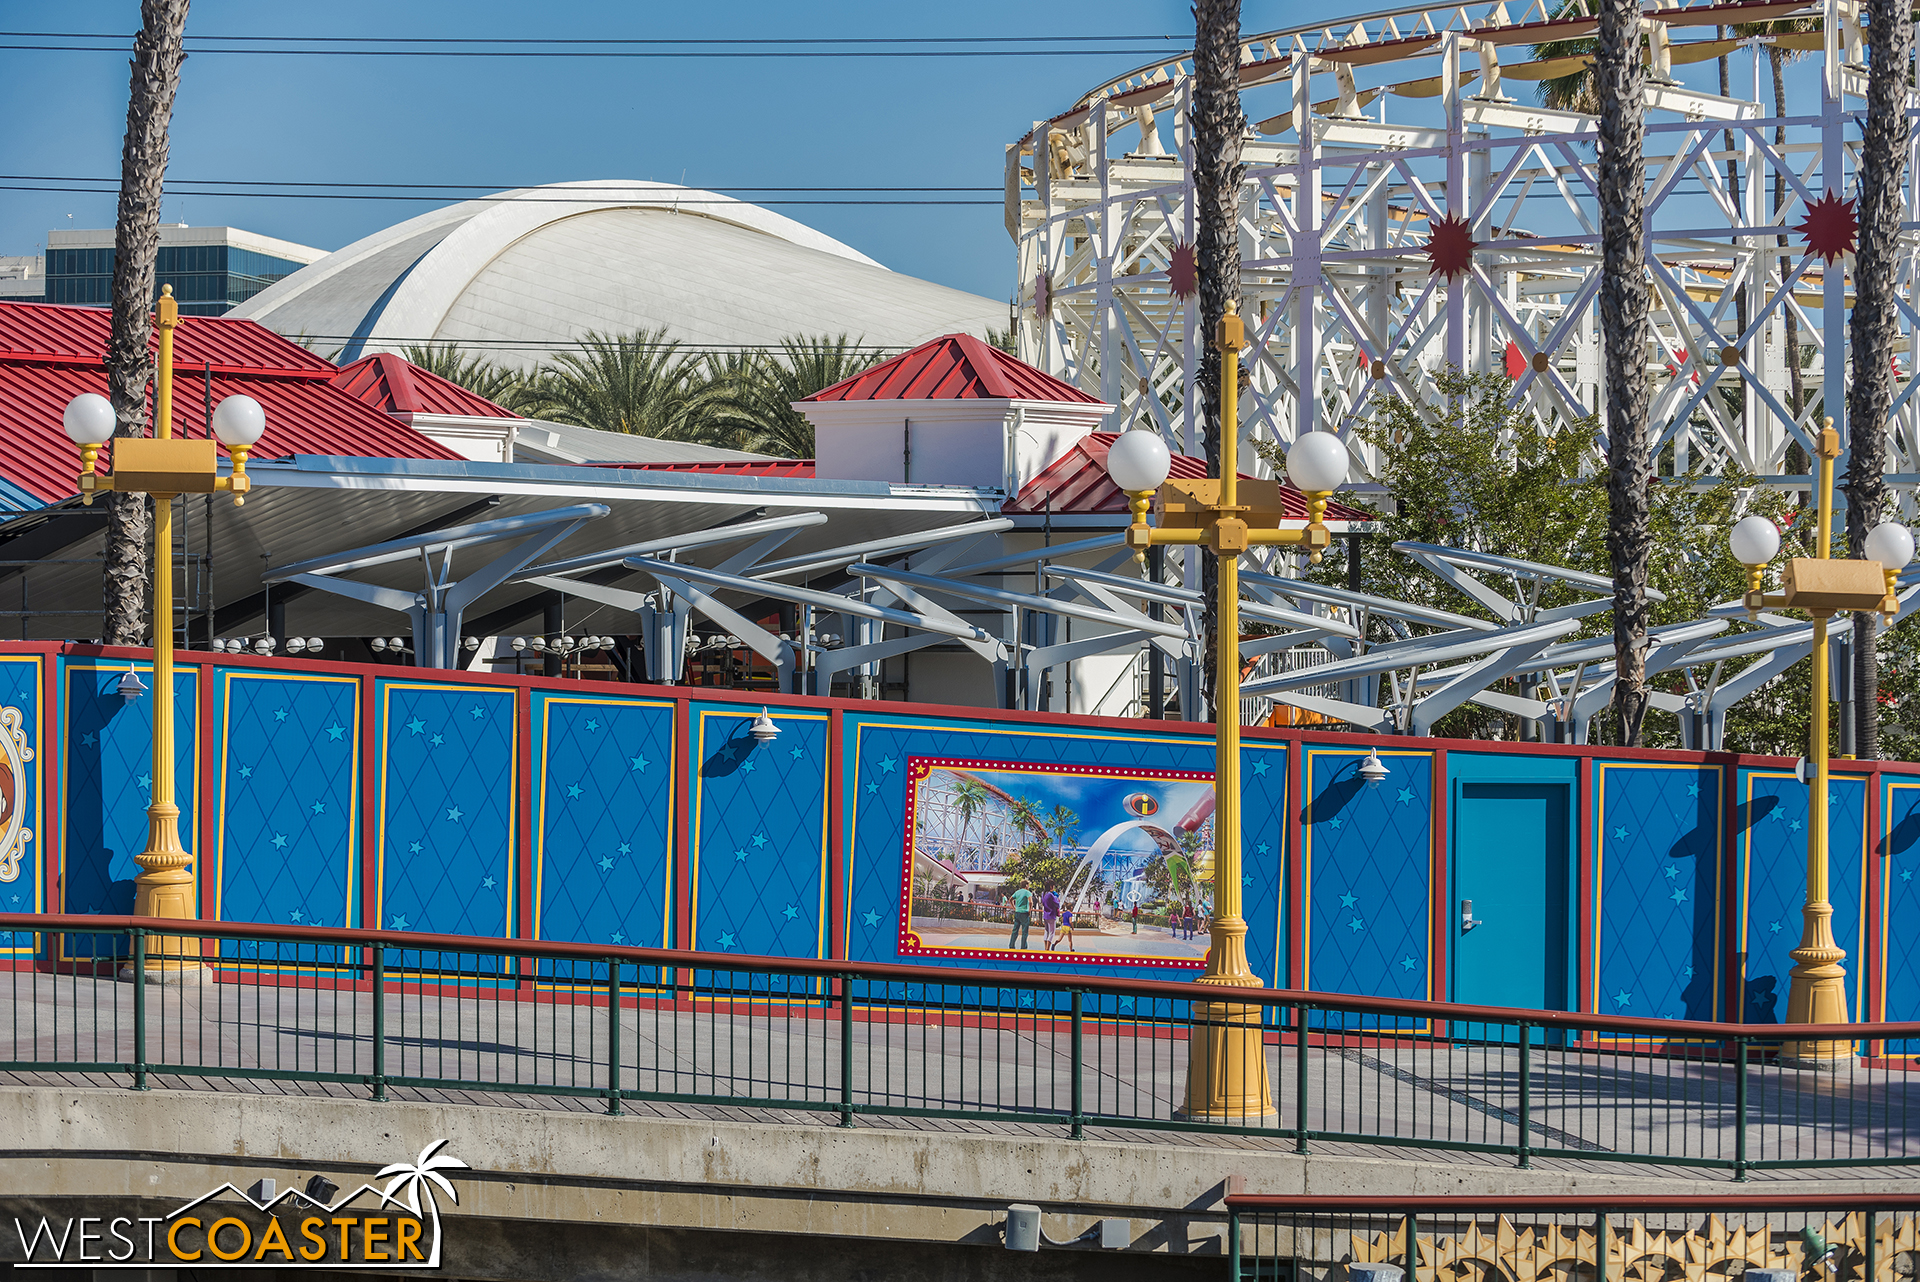 New shade structures in the queue…